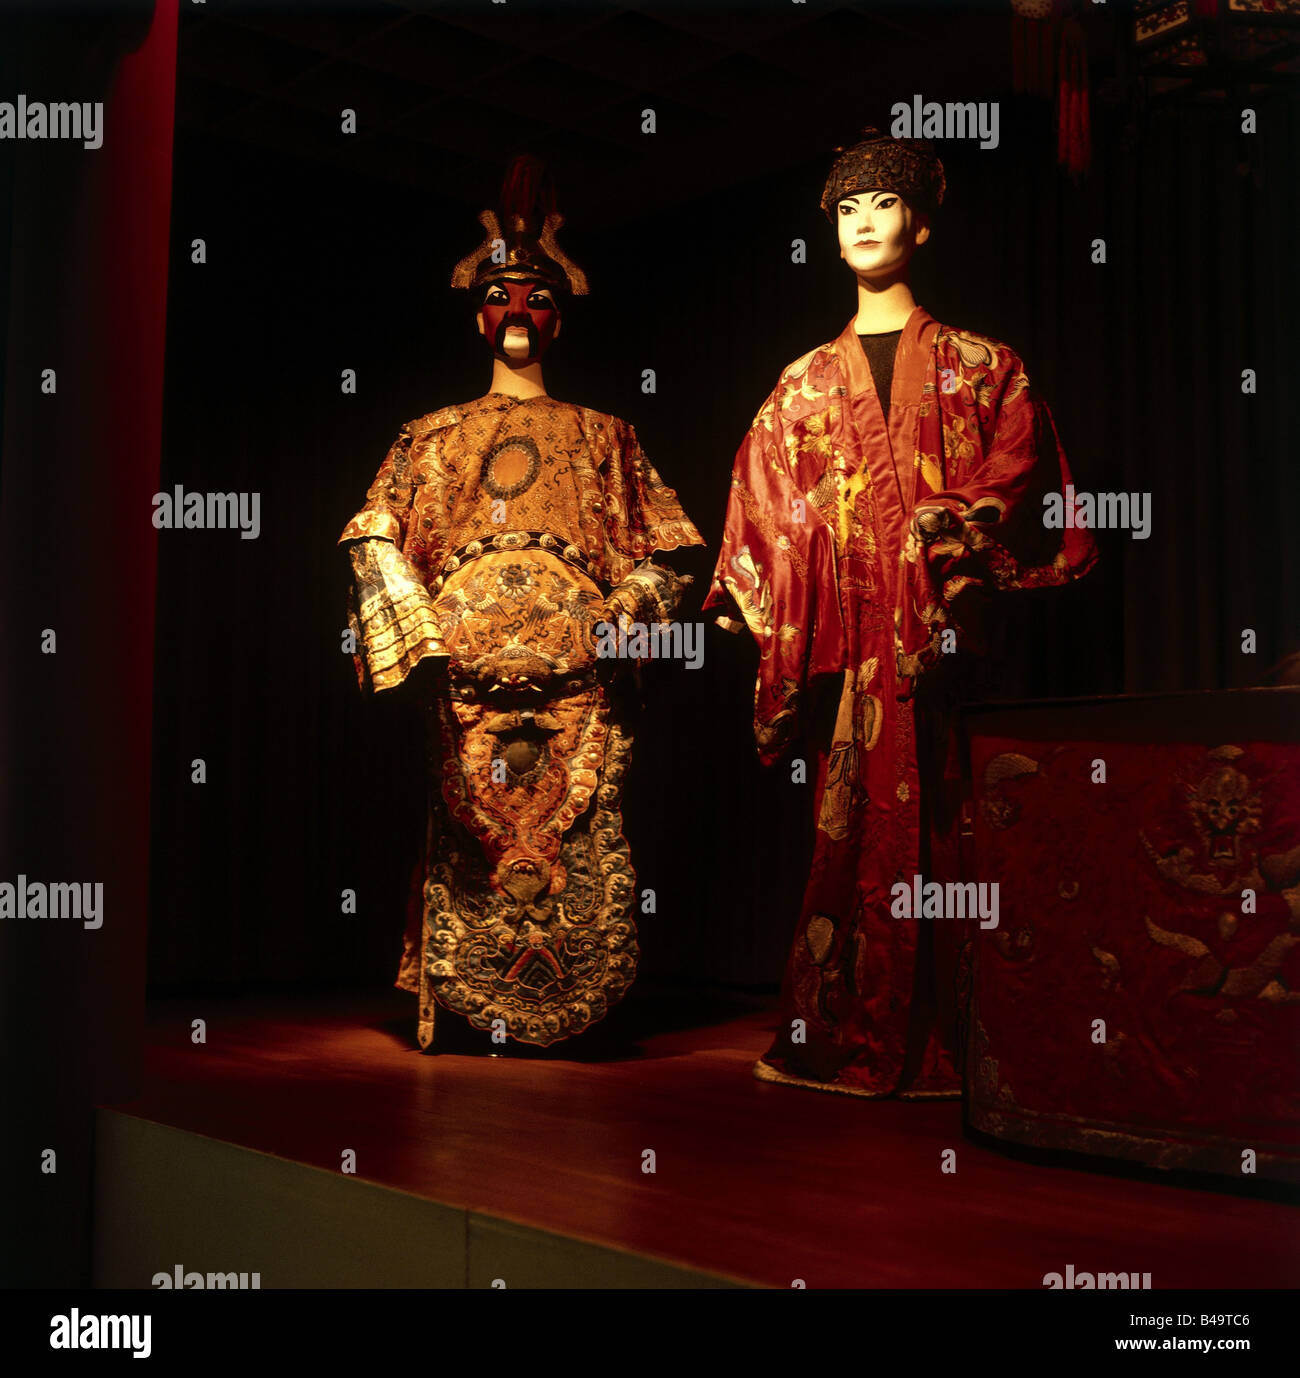 theate, China, Beijing opera, costumes, 19th/20th century